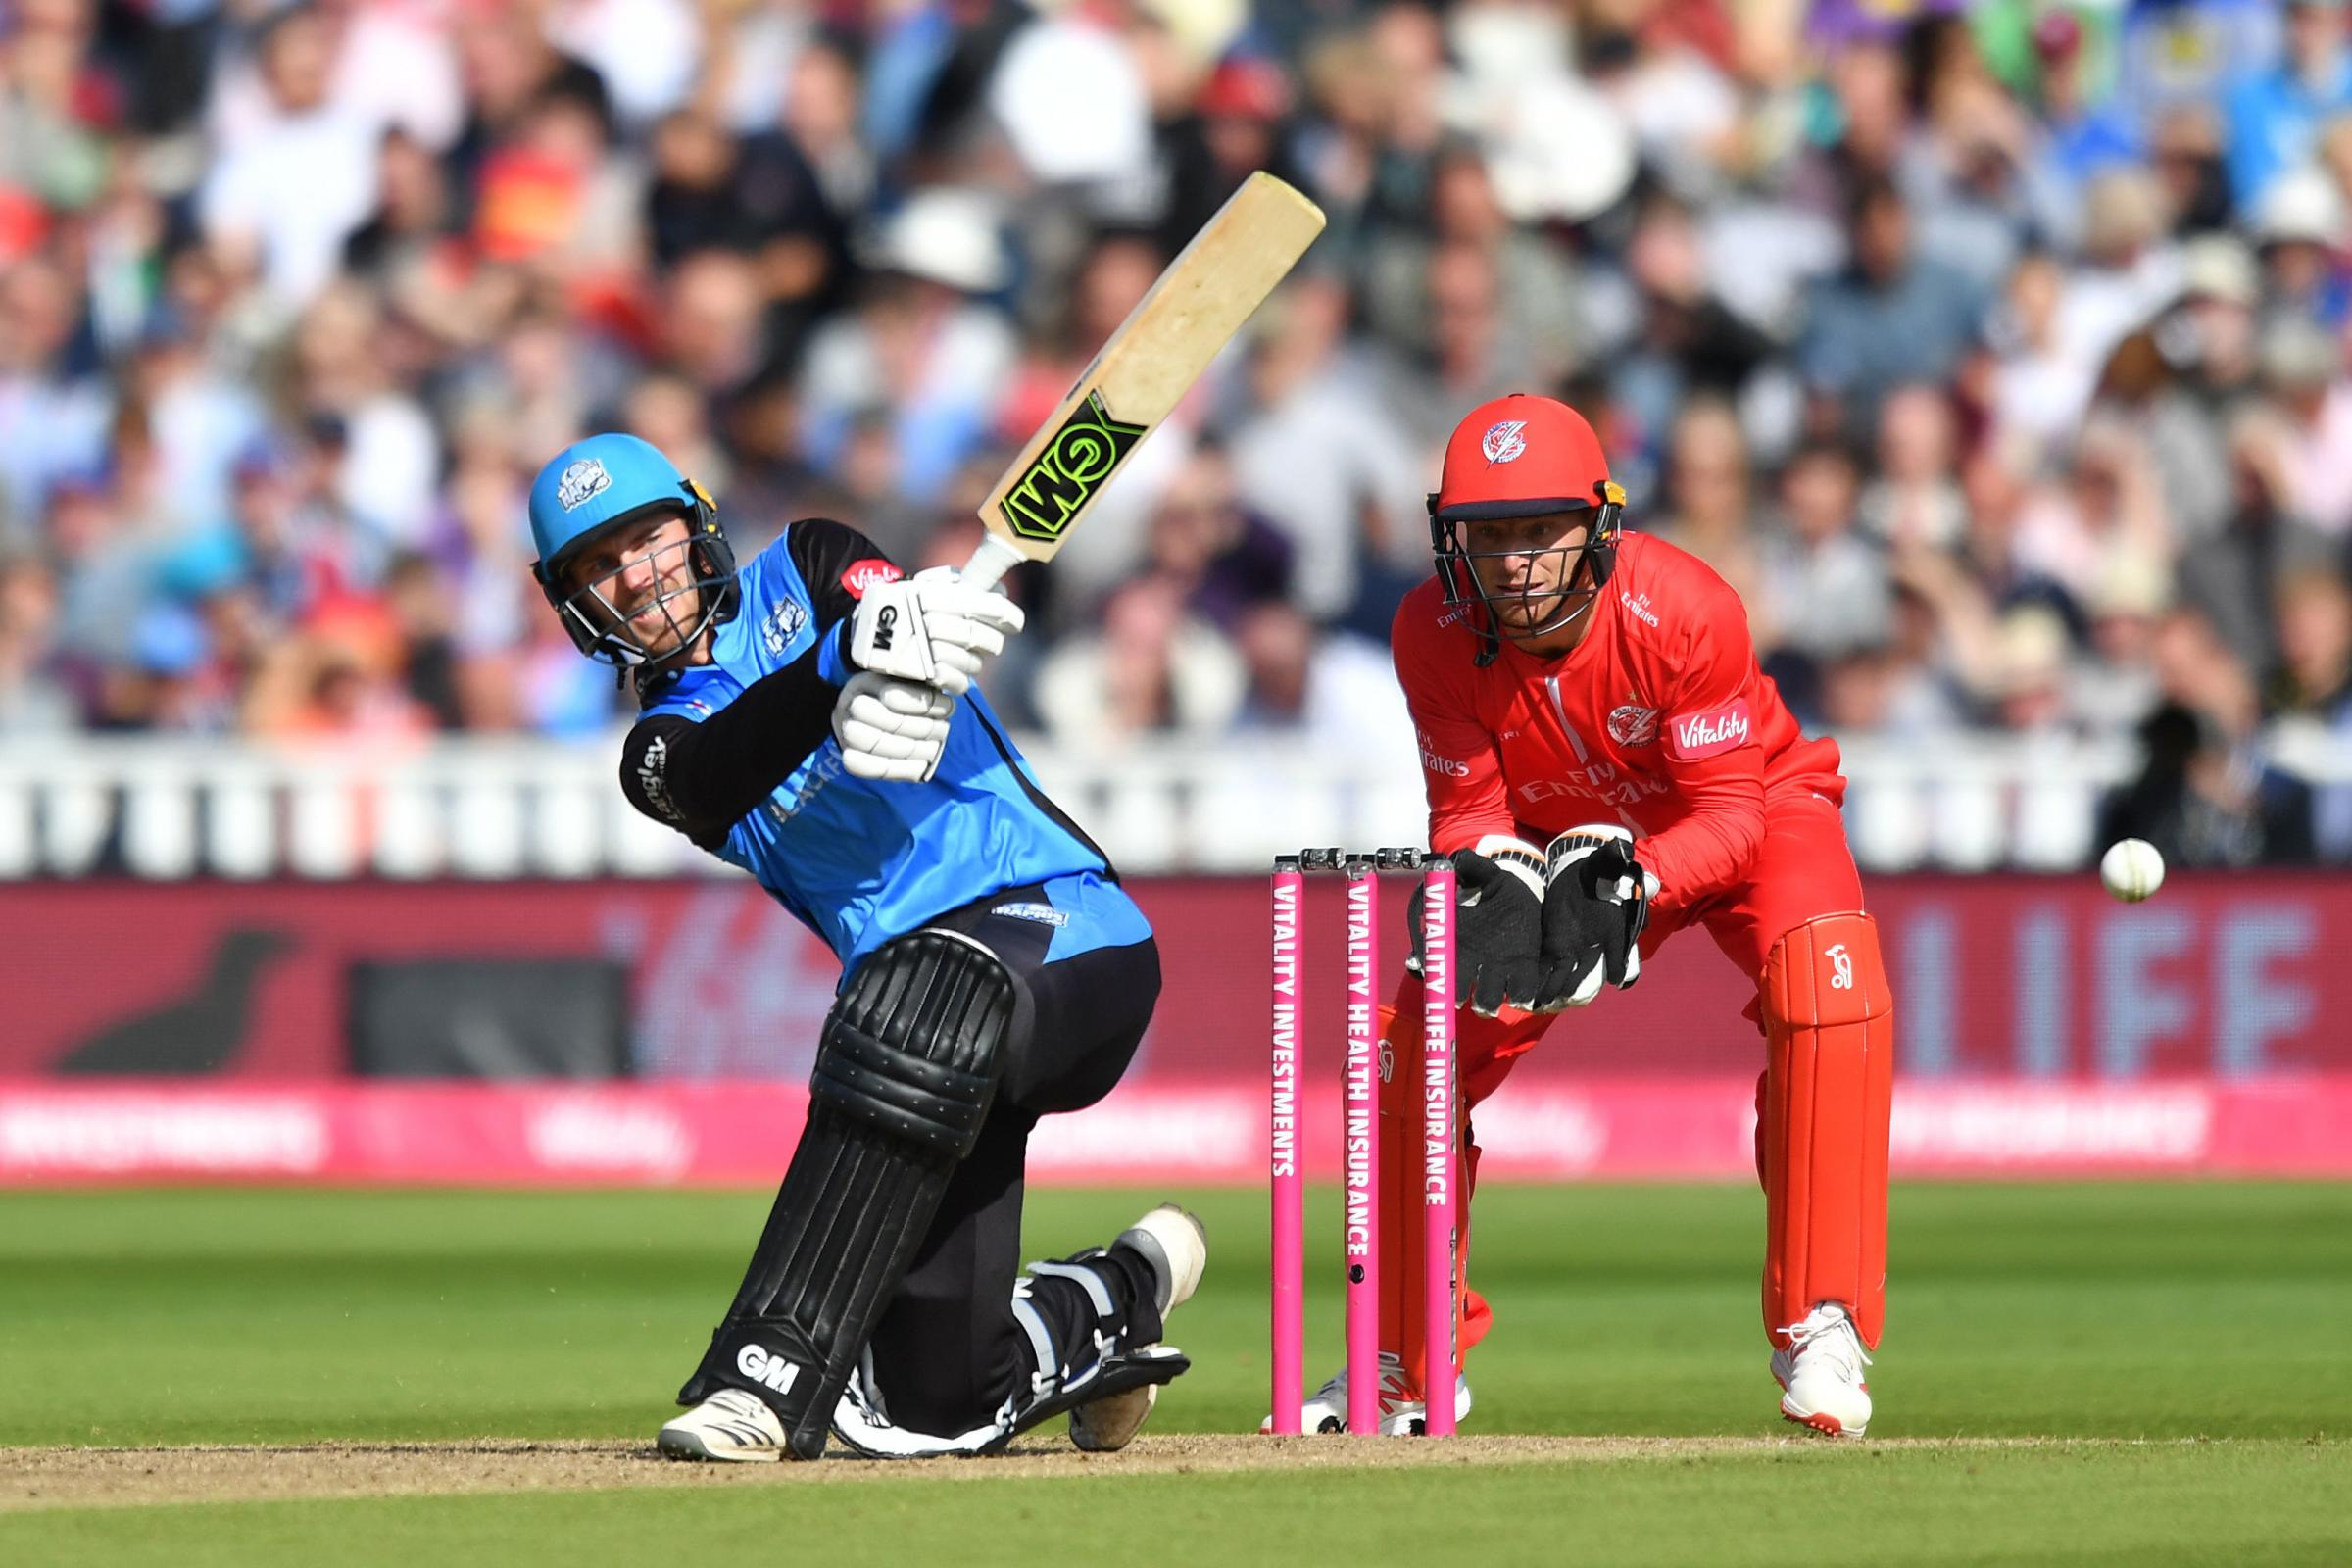 Tom Fell is back among the runs for Worcestershire Rapids. Picture: ANTHONY DEVLIN/PA WIRE